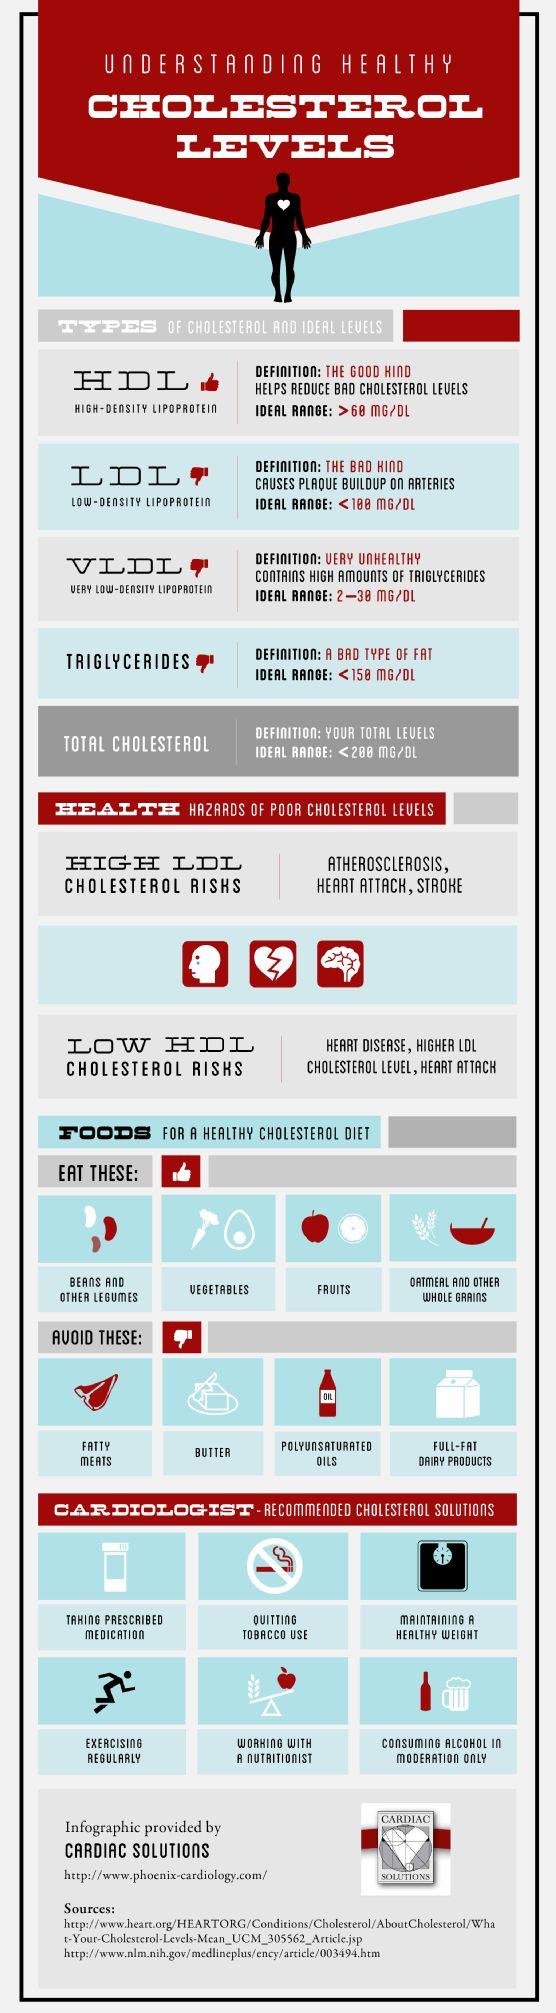 Did you know that having low levels of HDL, or good cholesterol, can put you at risk for heart disease and heart attack? Check out this infographic fr